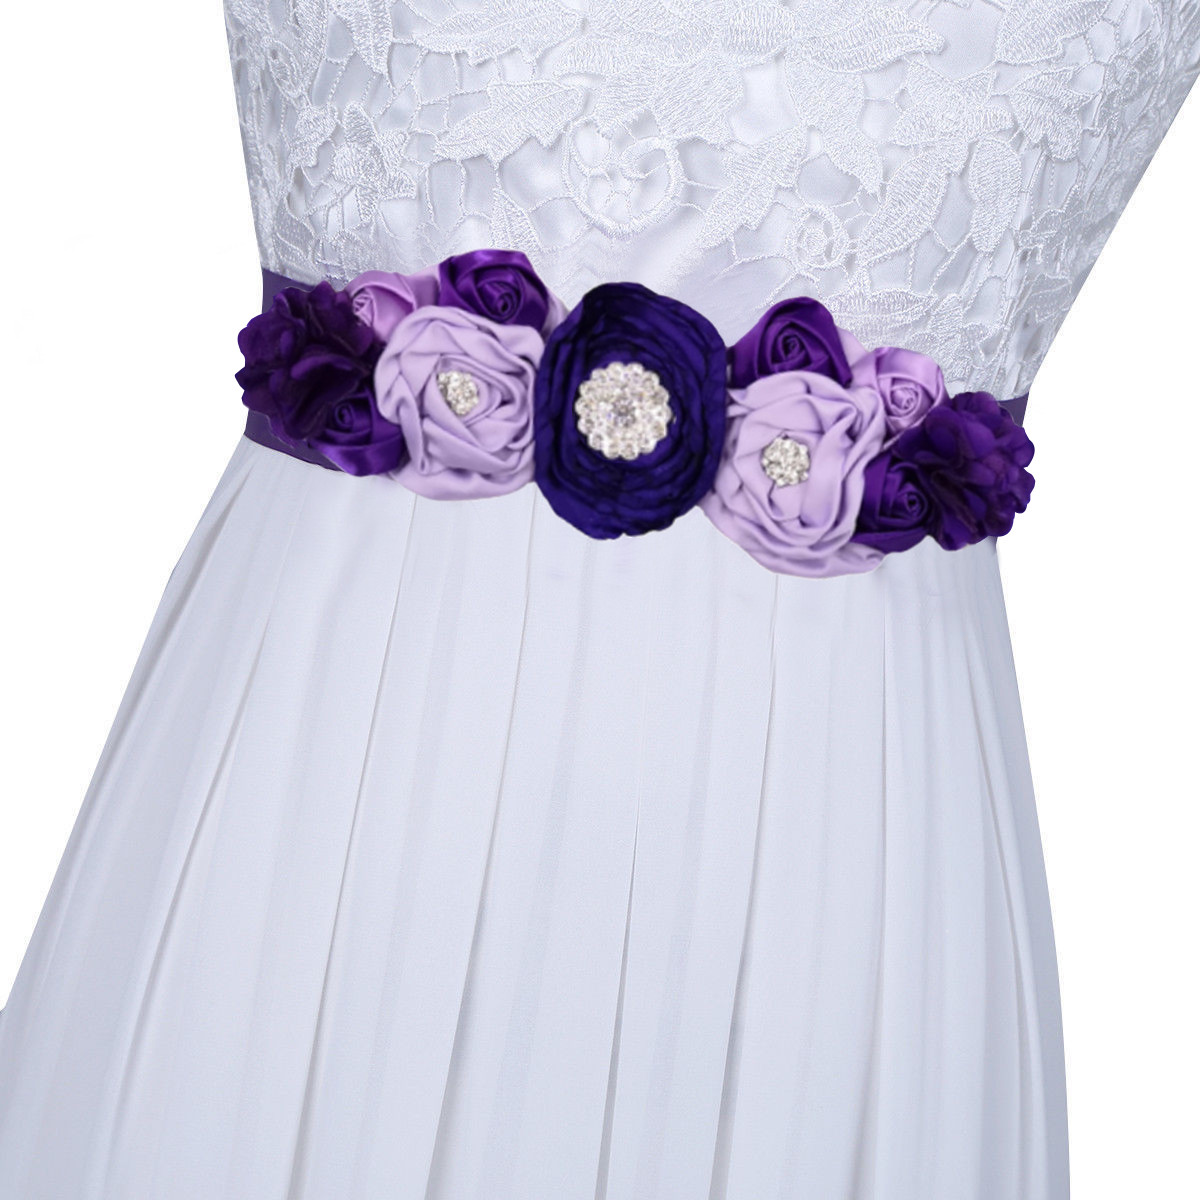 Flower Belts For Wedding Dresses: Beauty Kids Flower Girl Satin Silk Flower Sash Belt